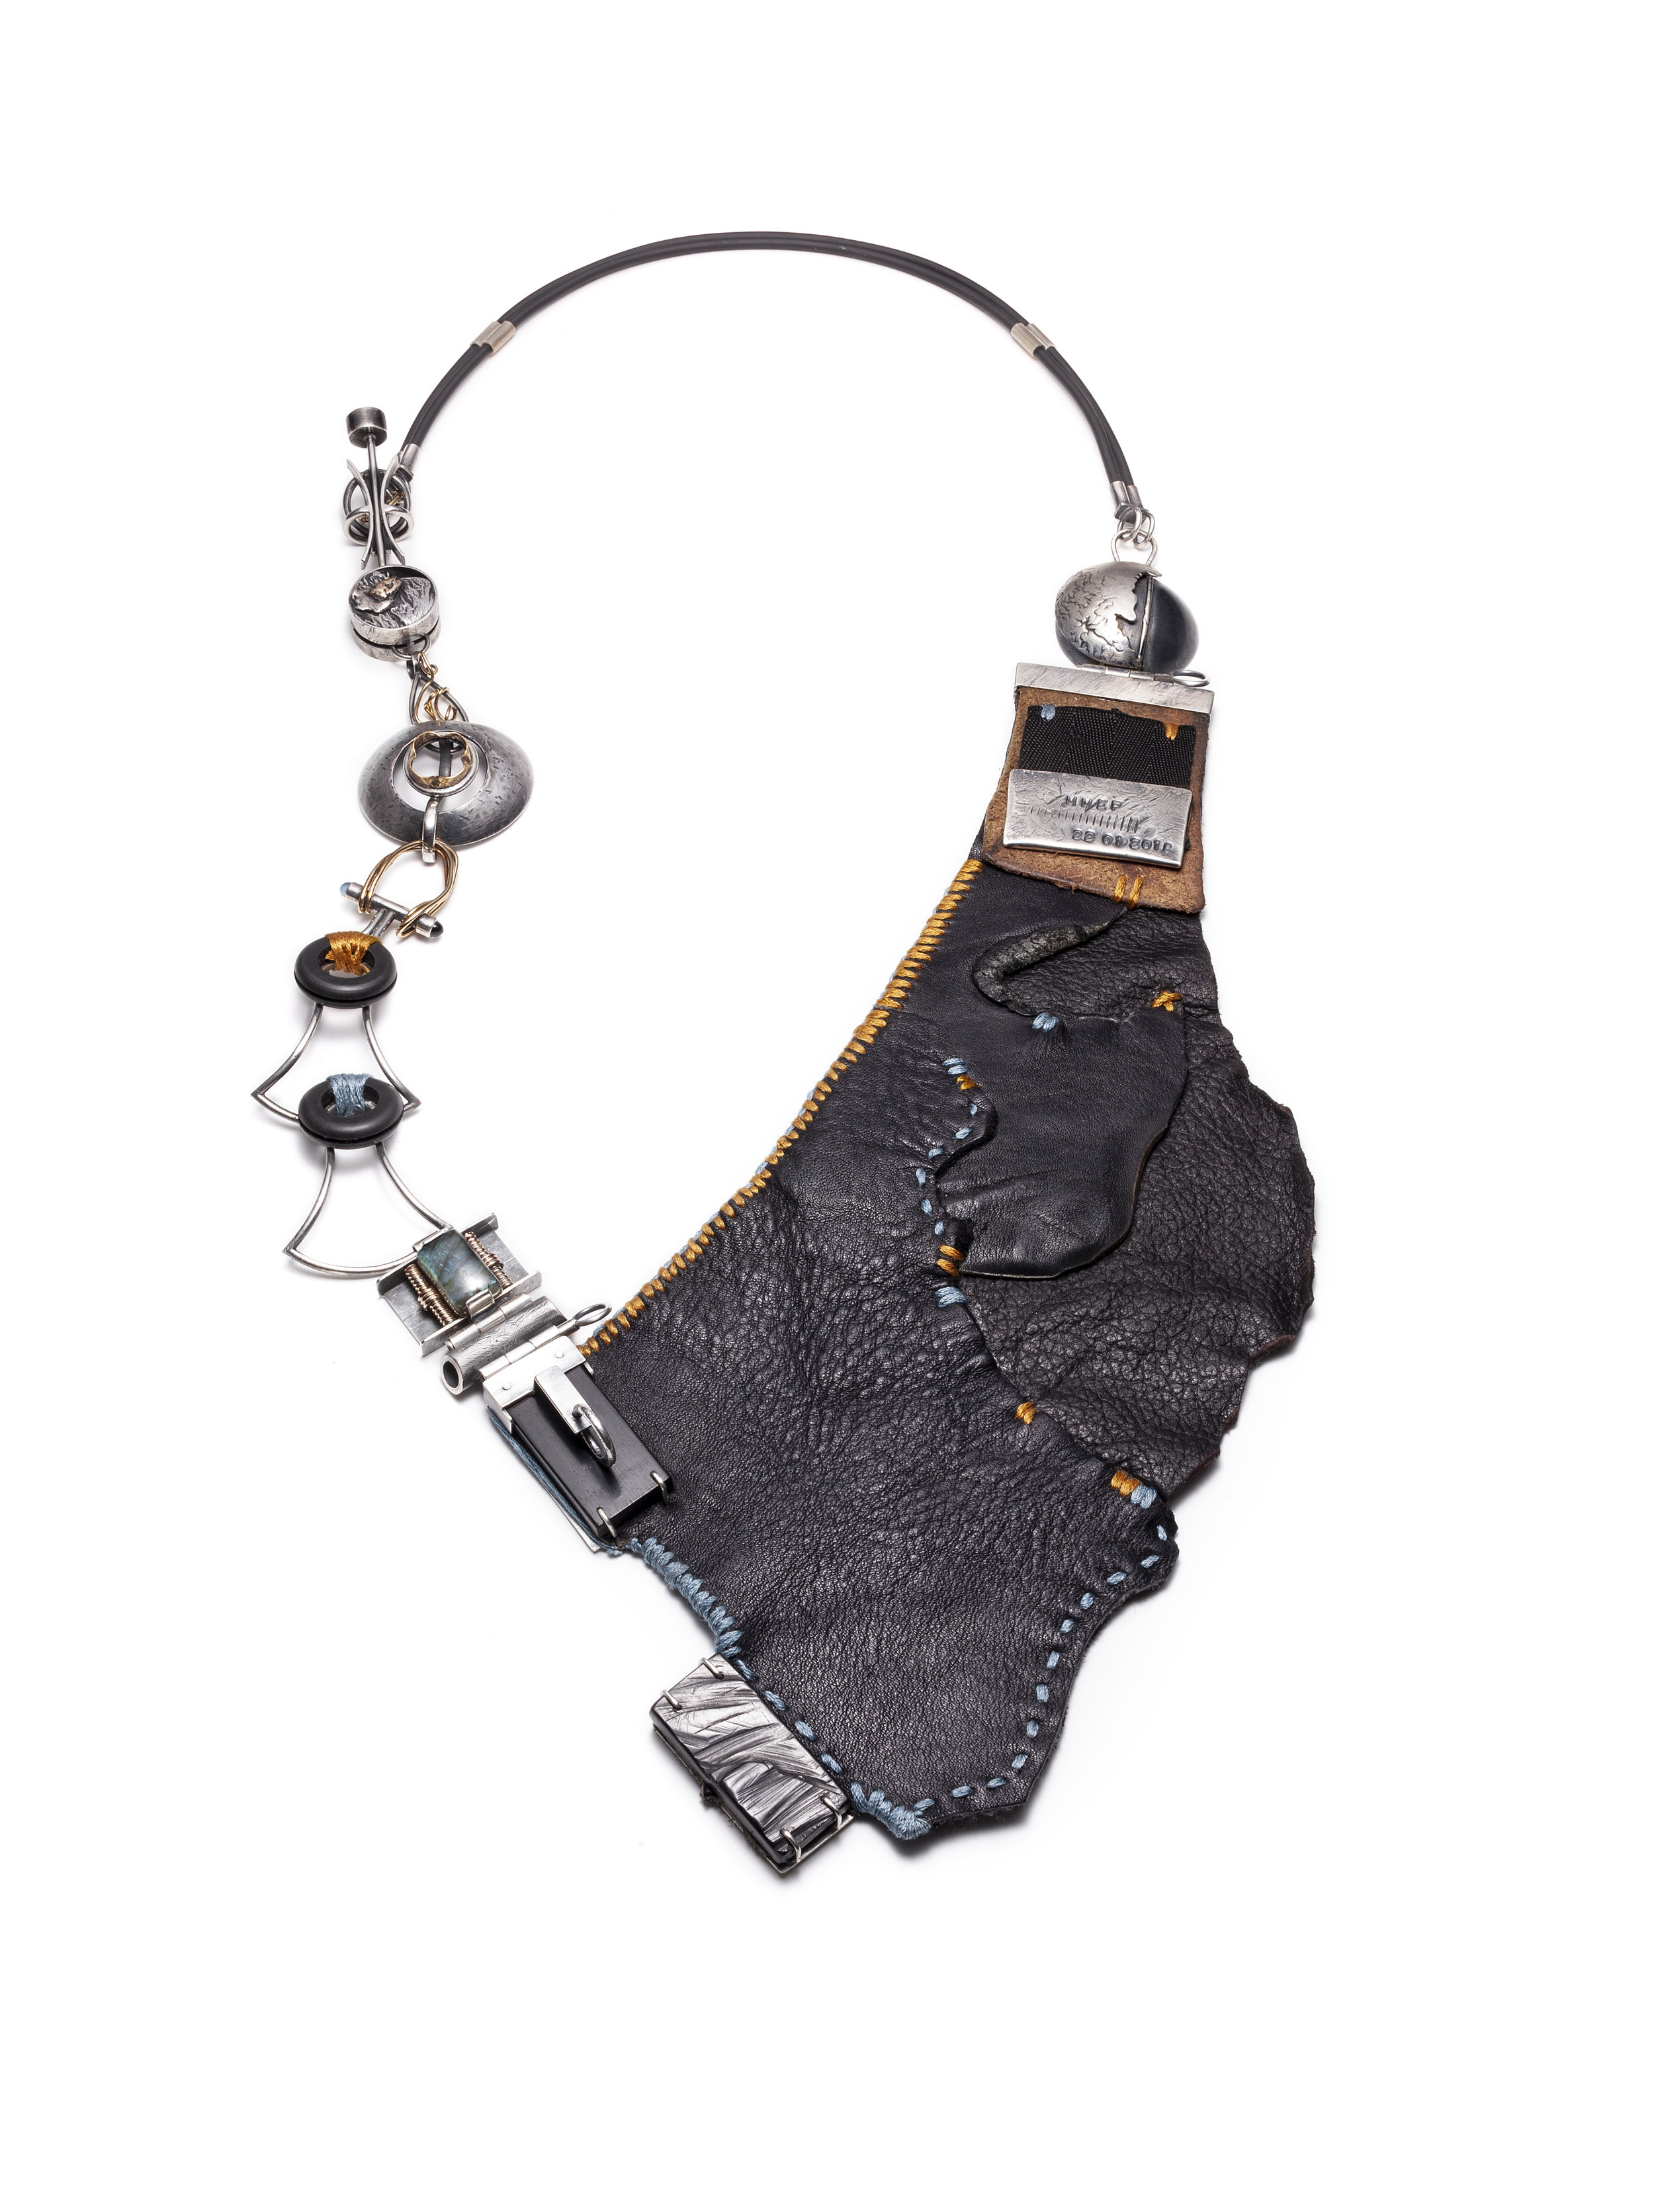 Monique Miller  Core  Neckpiece (2018) Sterling silver, 14k gold, leather, ebony, rubber, cotton, labradorite, london blue topaz